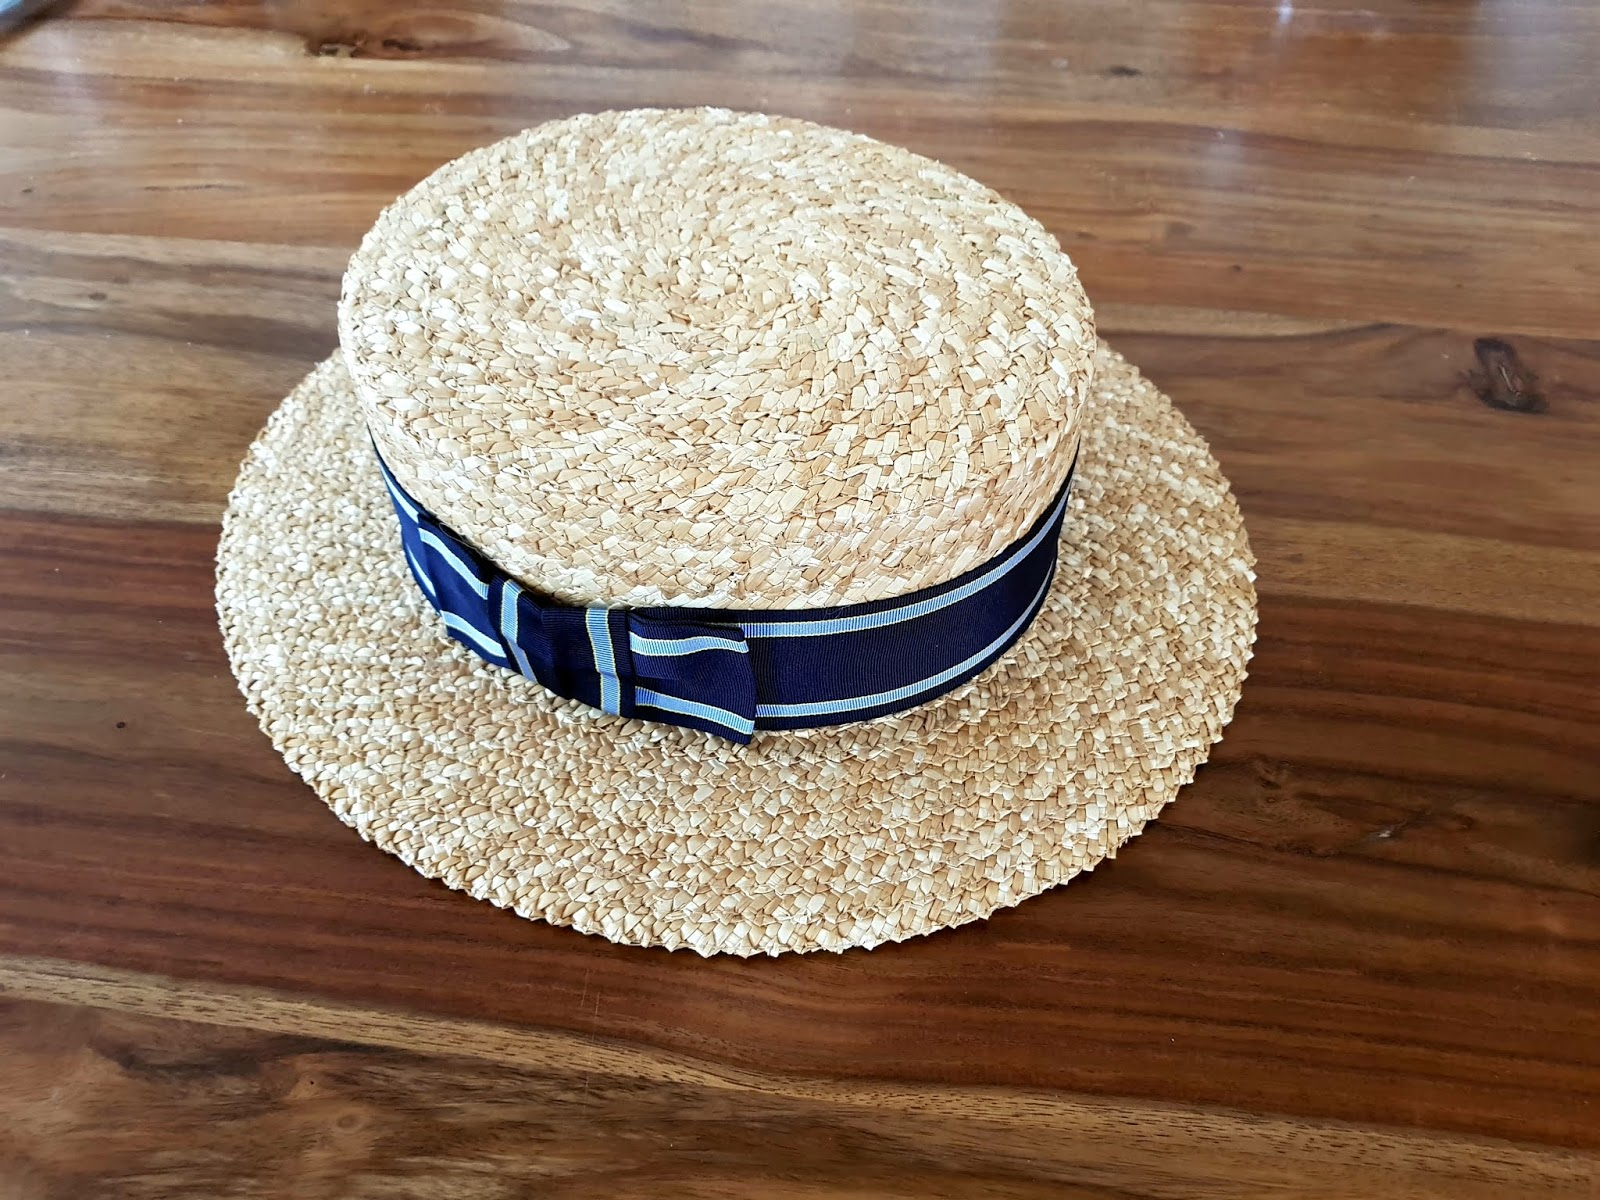 e4dc9e49d7839 Newly Arrived and Just in Time to for Spring Summer a Straw Boater Hat from  Gamble   Gun